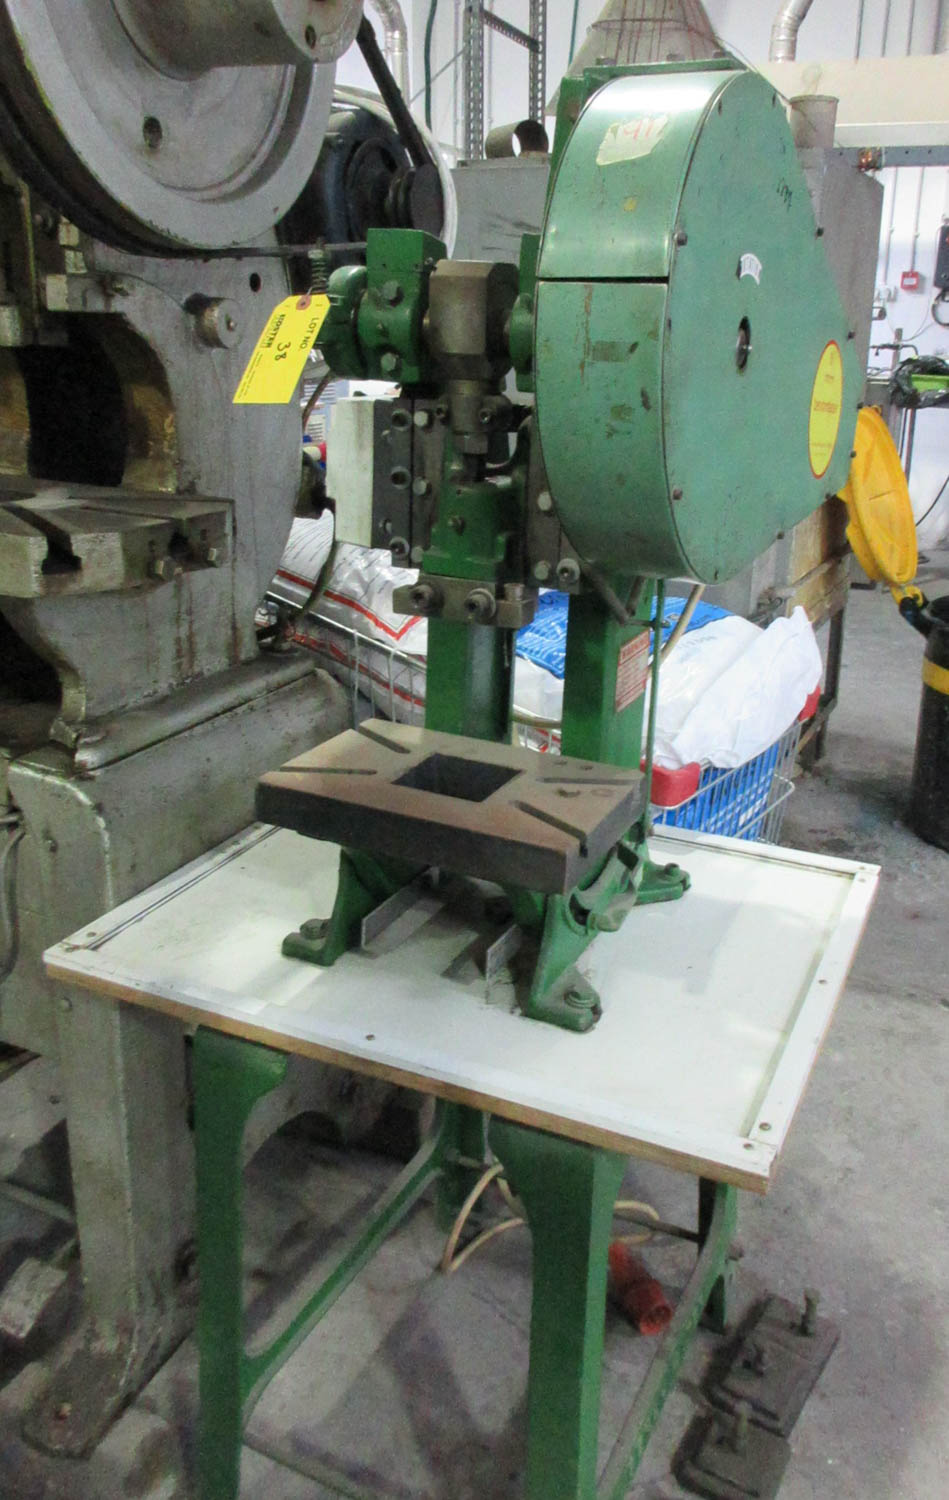 Lot 38 - BENCHMASTER OBI PUNCH PRESS; MECHANICAL CLUTCH; 30X20 T-SLOT TABLE; 11 CM THROAT; 15 CM OPEN HEIGHT;